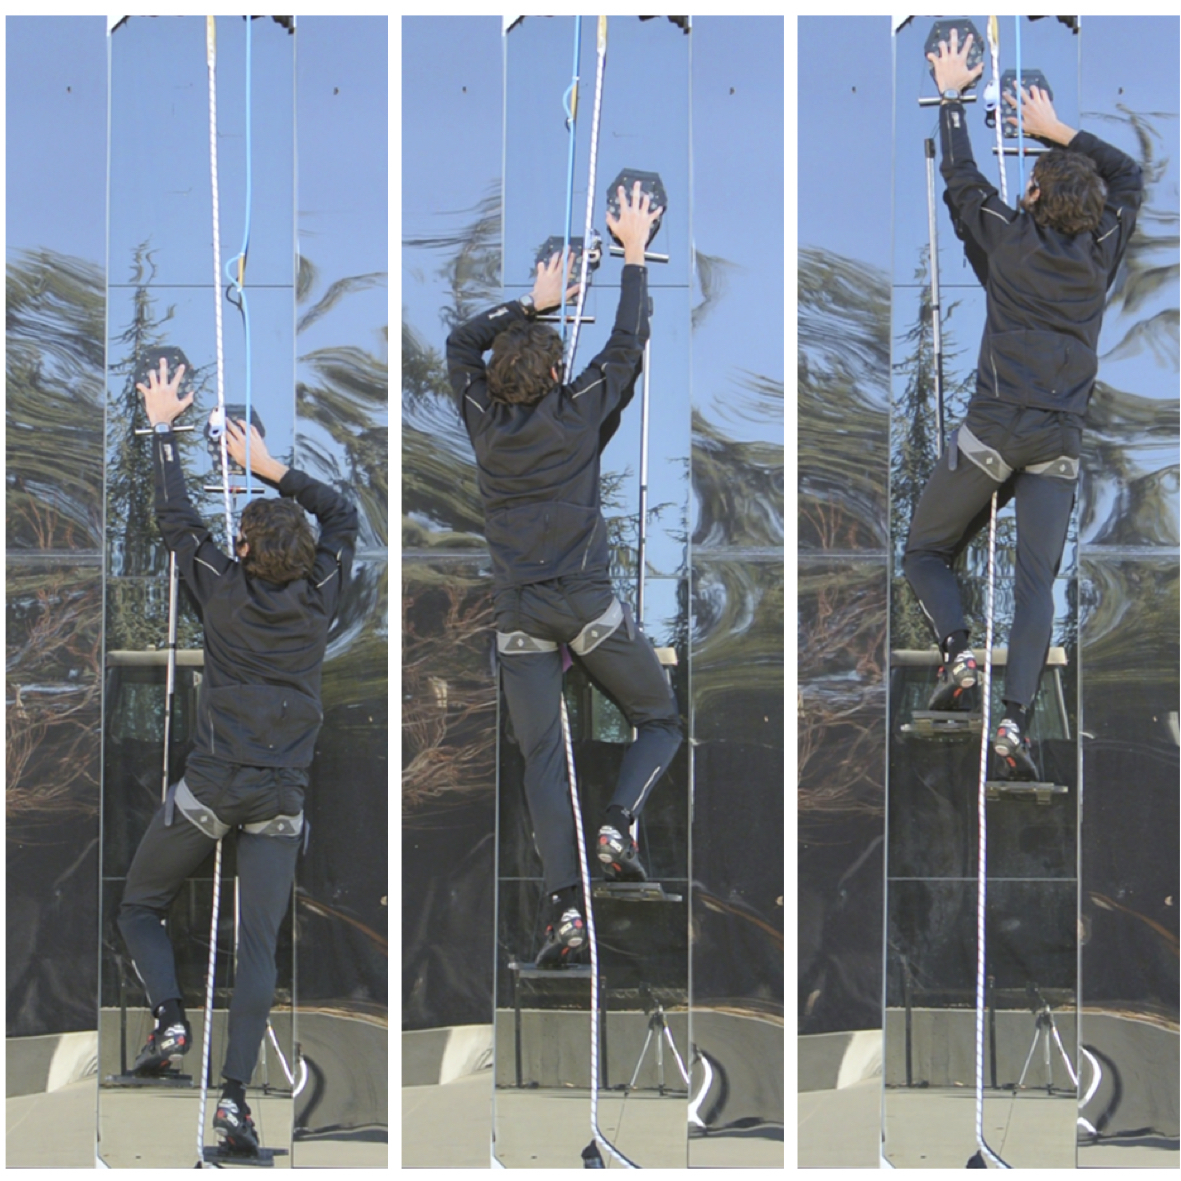 Stanford engineers climb walls using gecko-inspired climbing device...